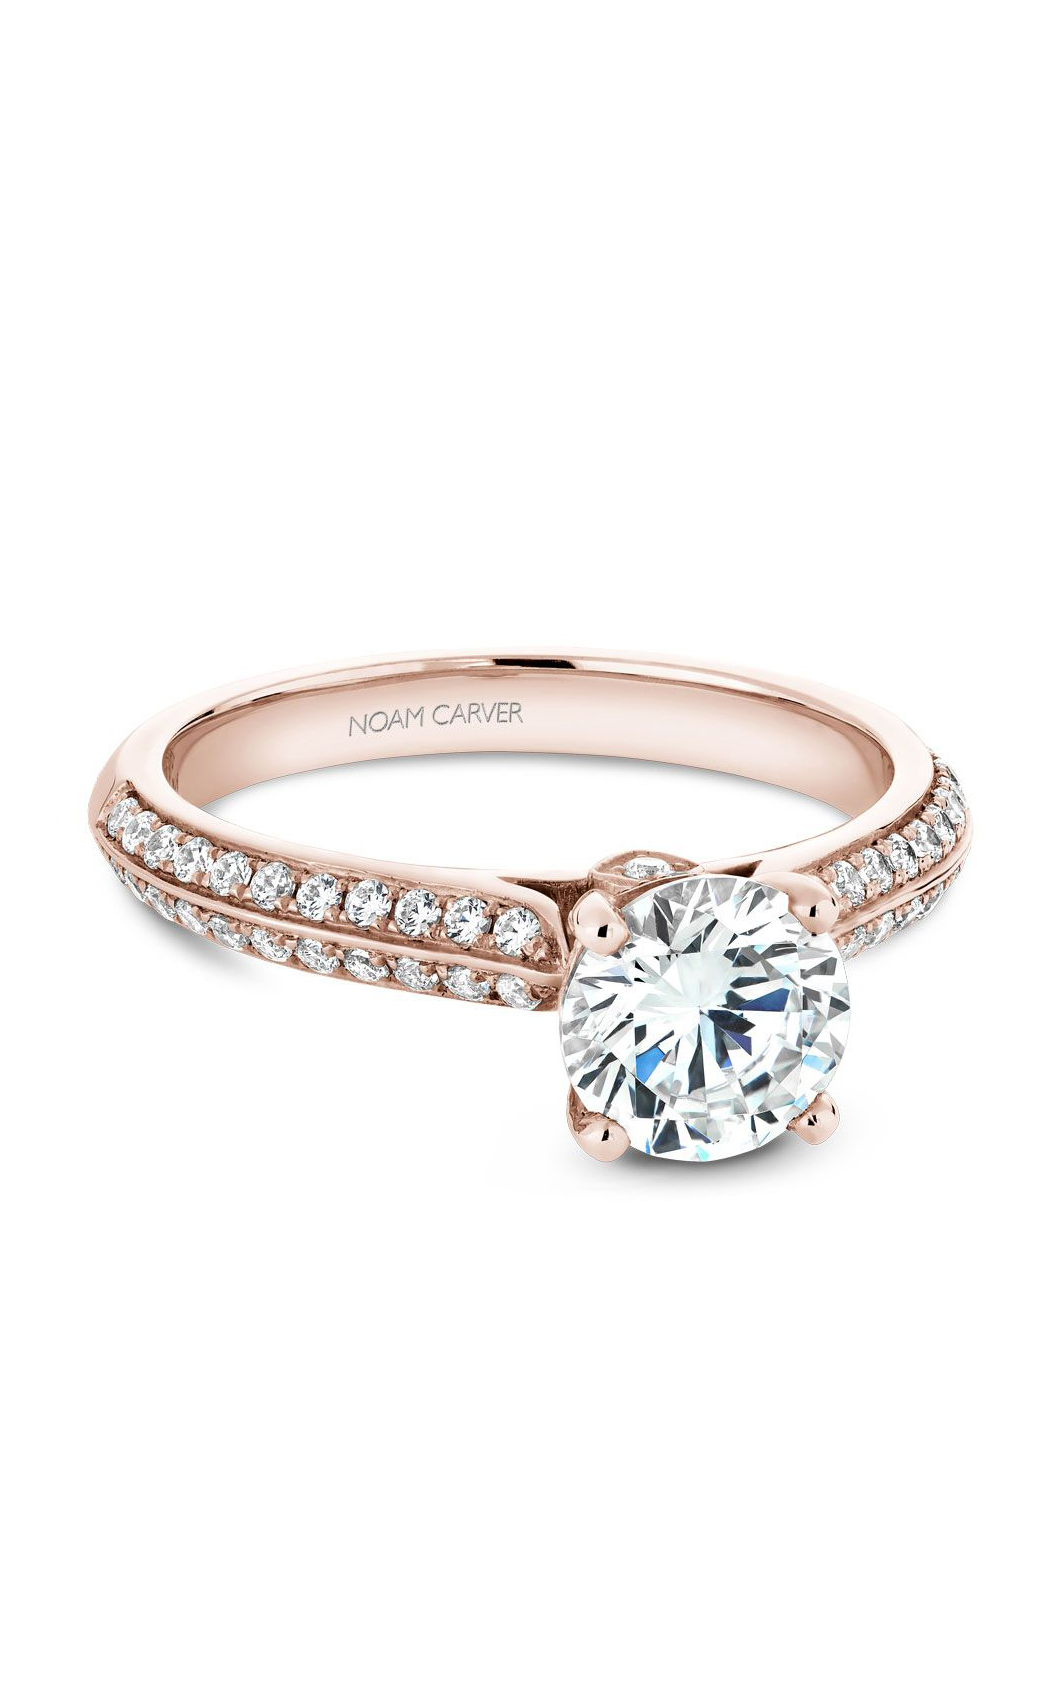 Noam Carver Classic Engagement Ring B144-02RA product image